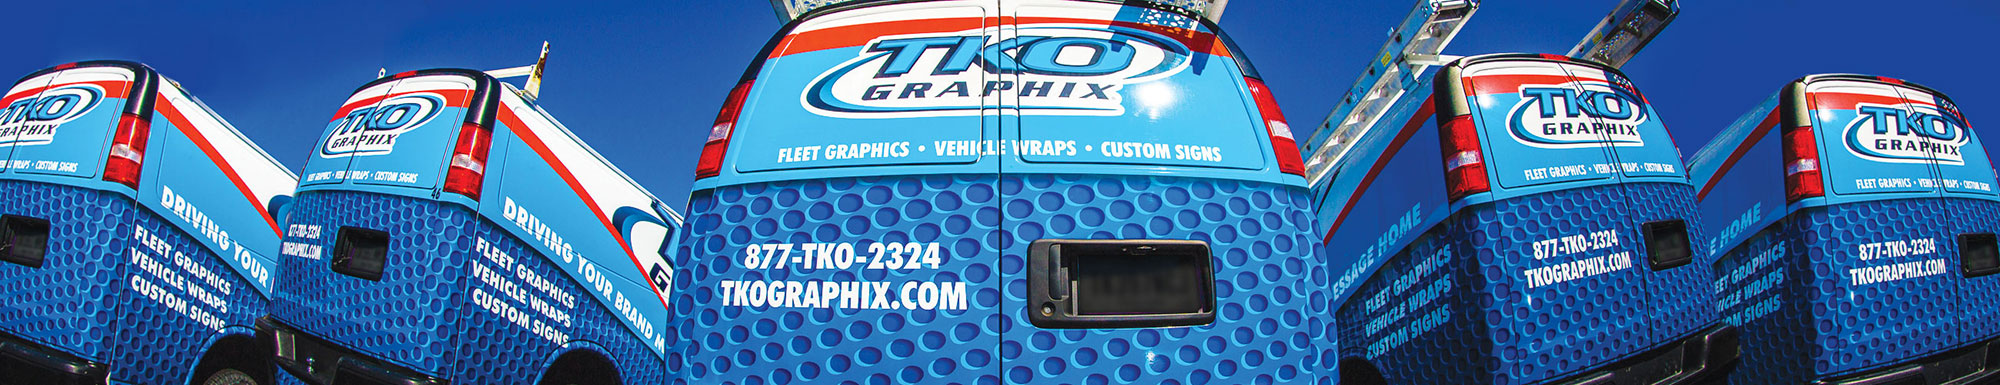 Fleet of TKO Graphix Van Wraps